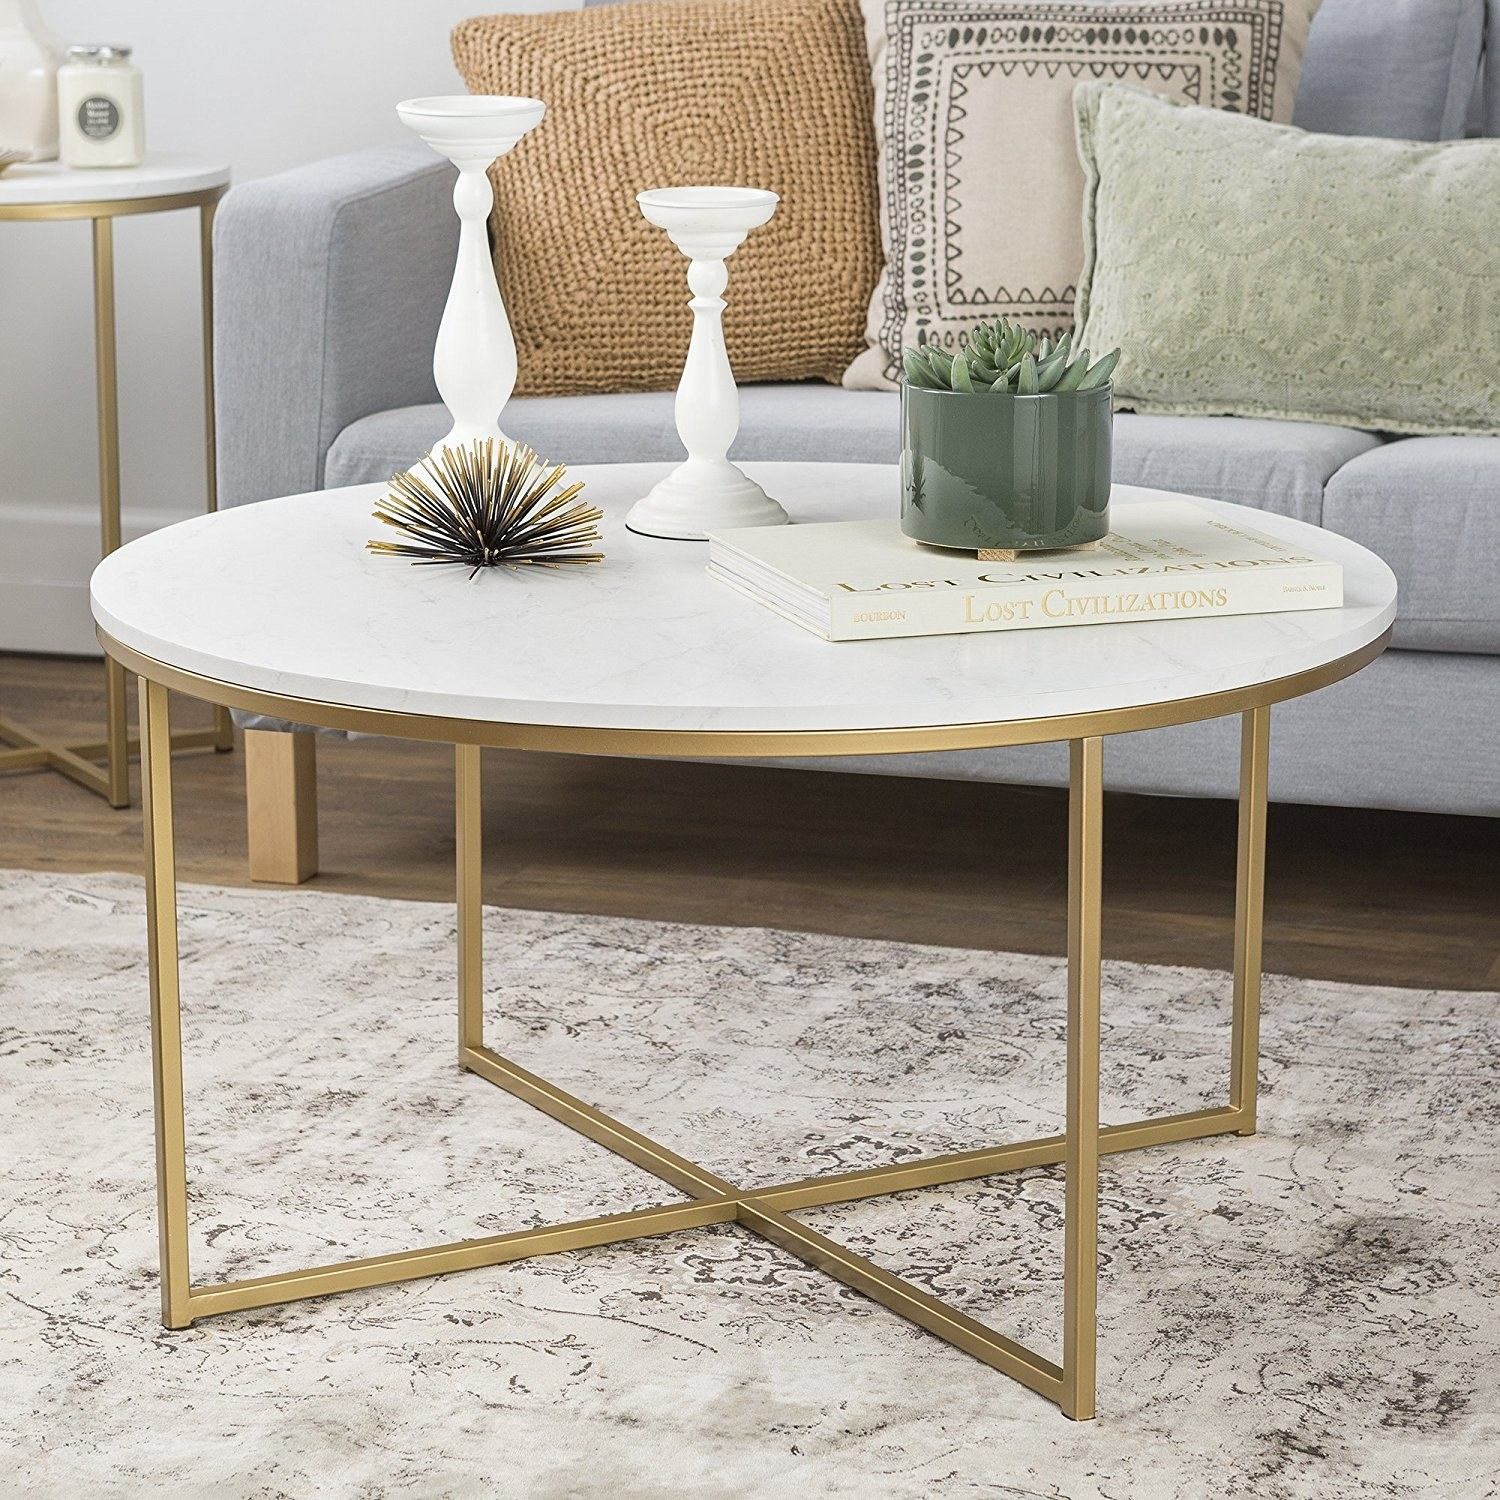 The gold and faux marble round table